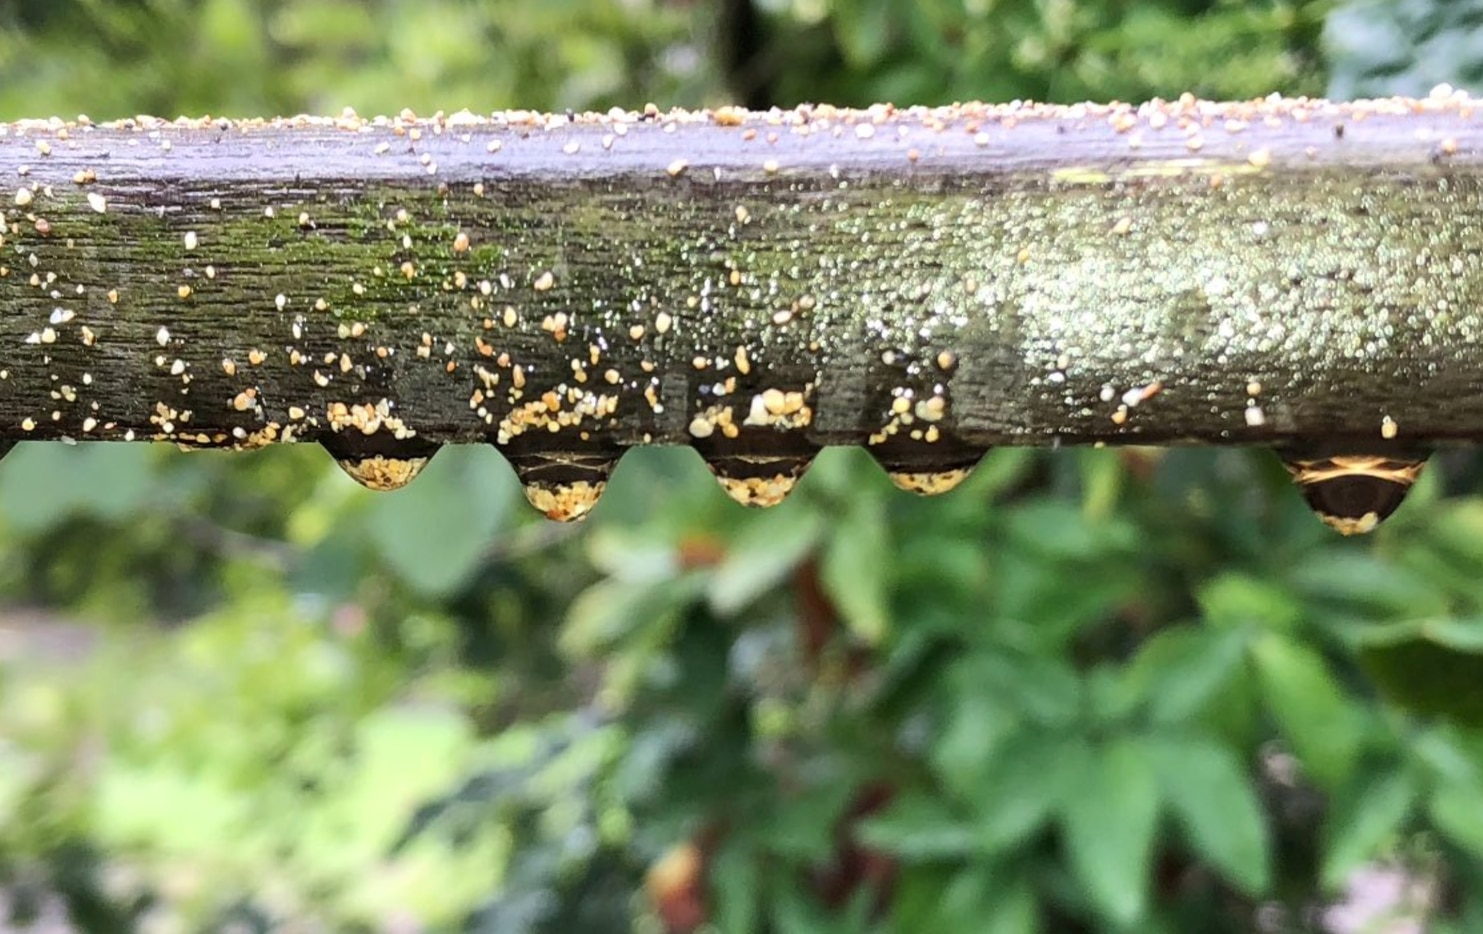 The surface tension of these raindrops is strong enough to keep grains of sand clinging to this twig.